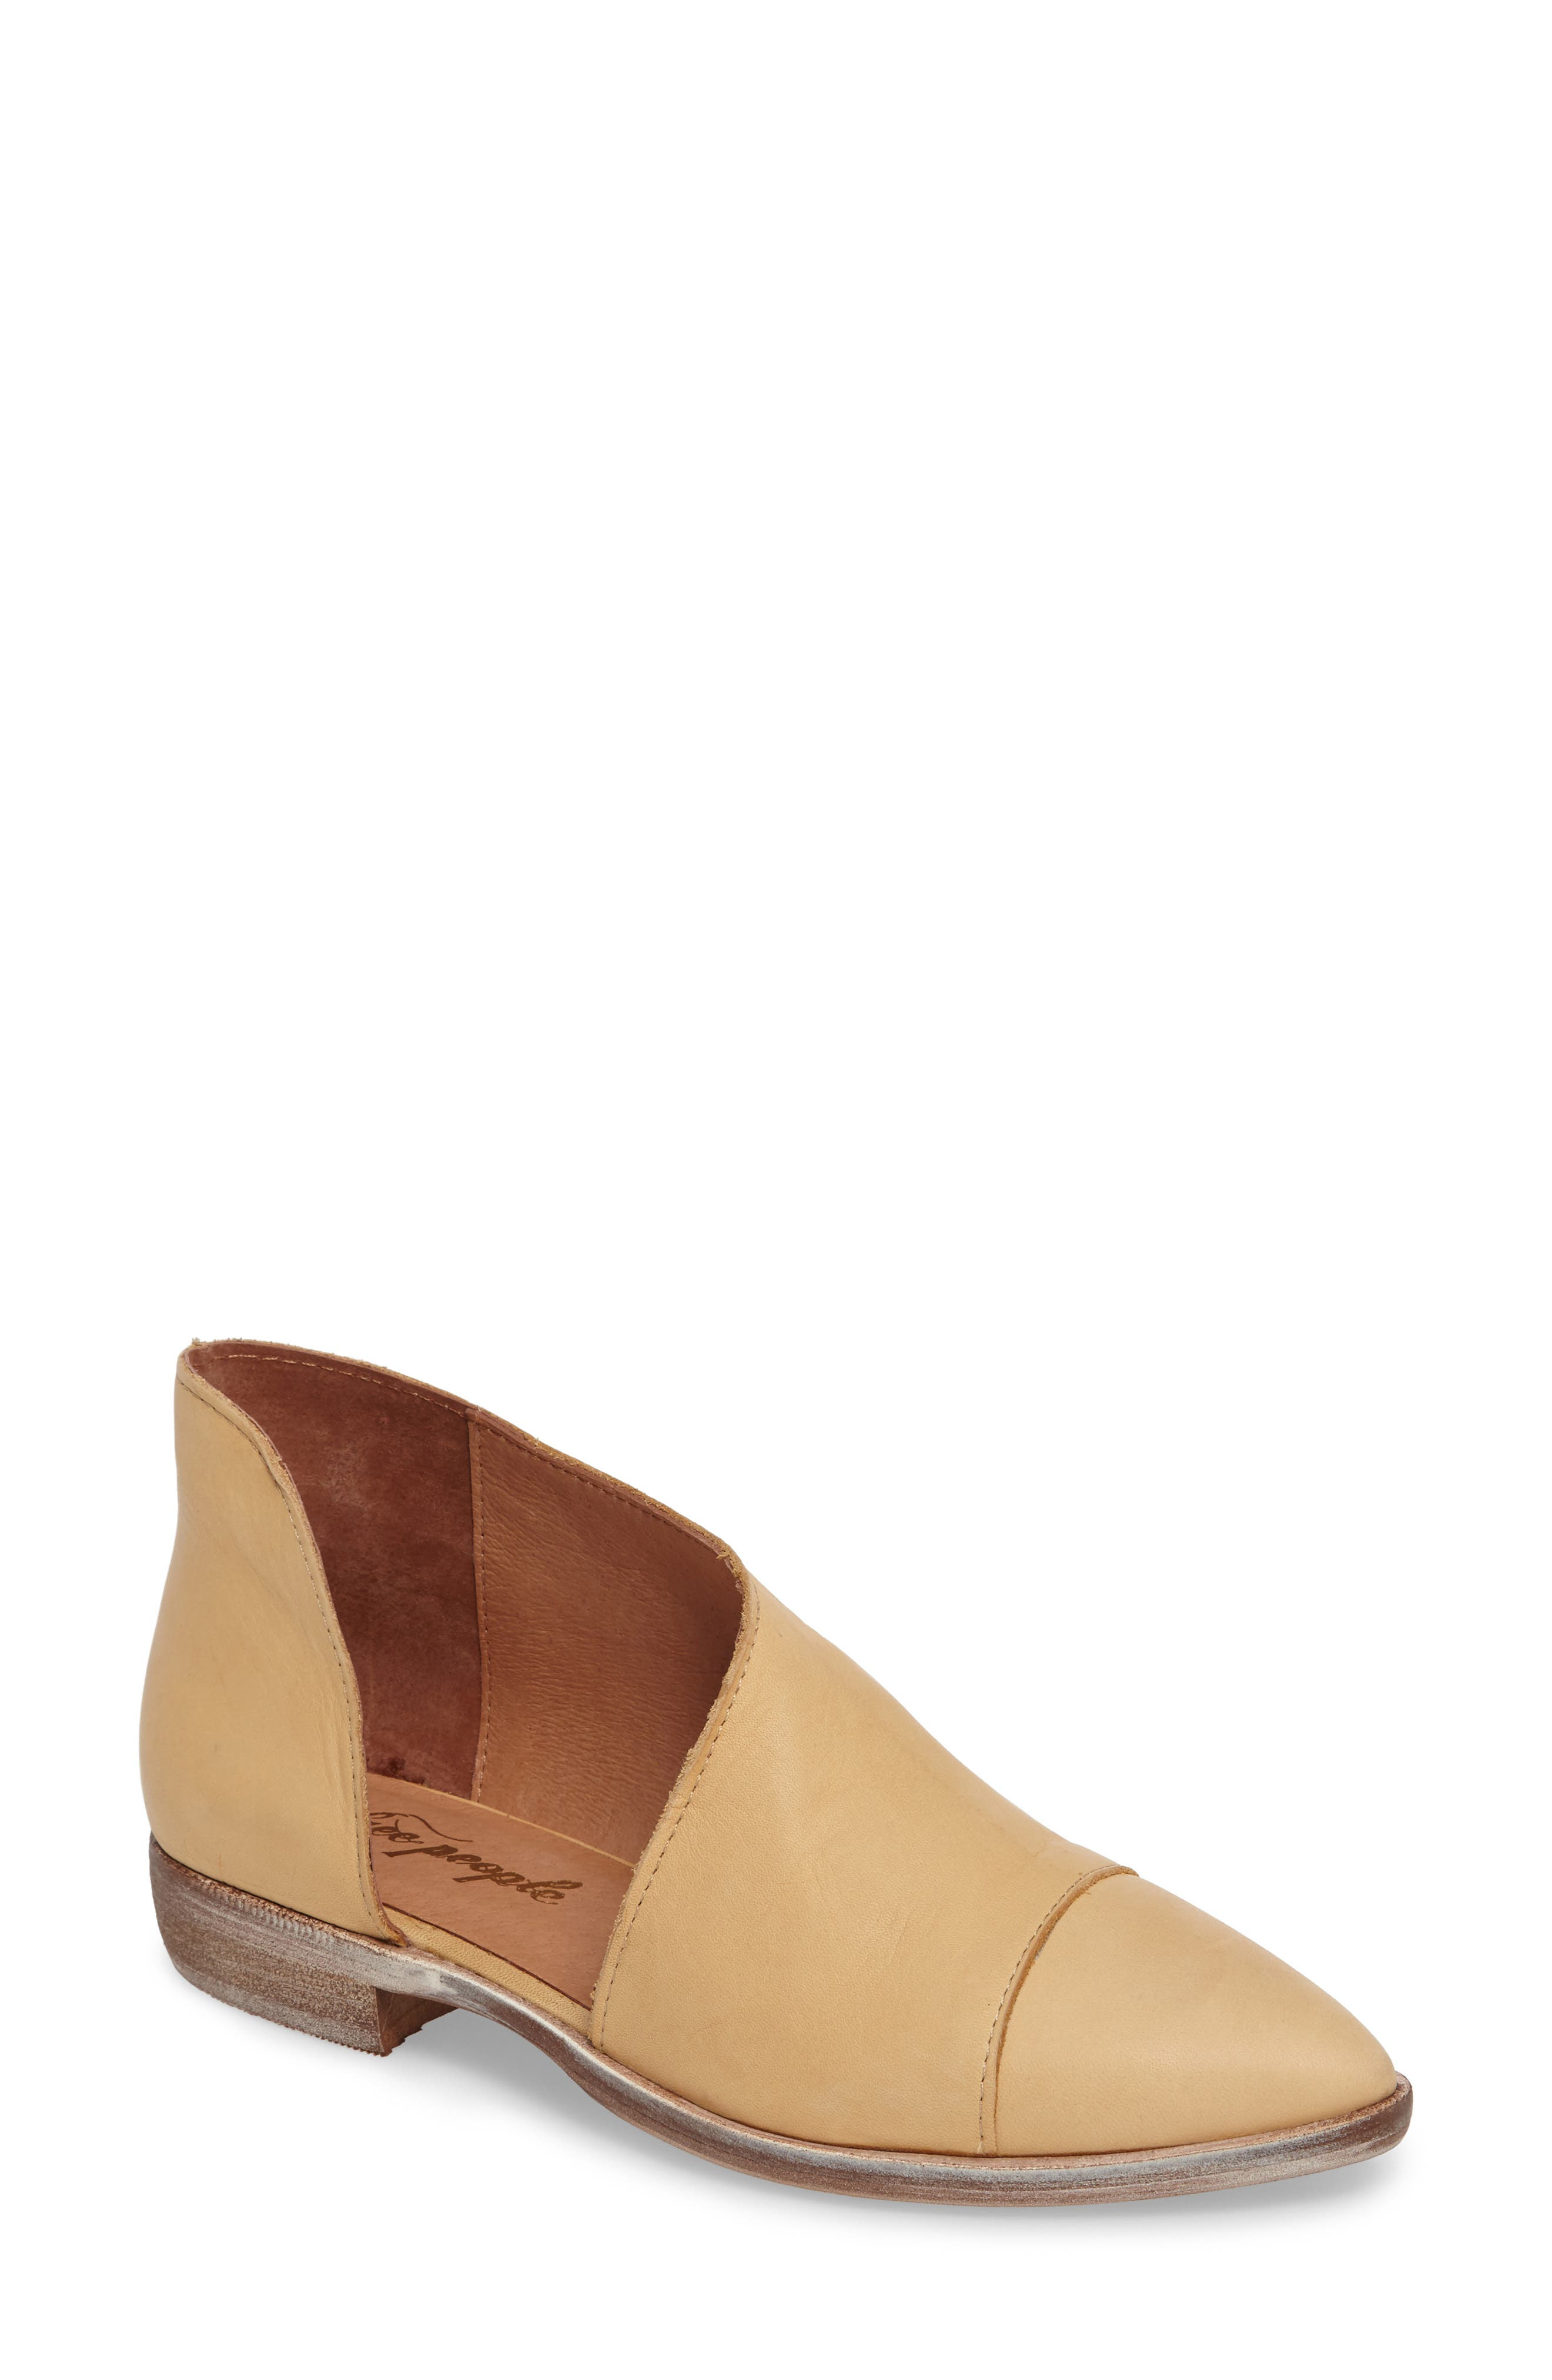 Alternate Image 1 Selected - Free People 'Royale' Pointy Toe Flat (Women)